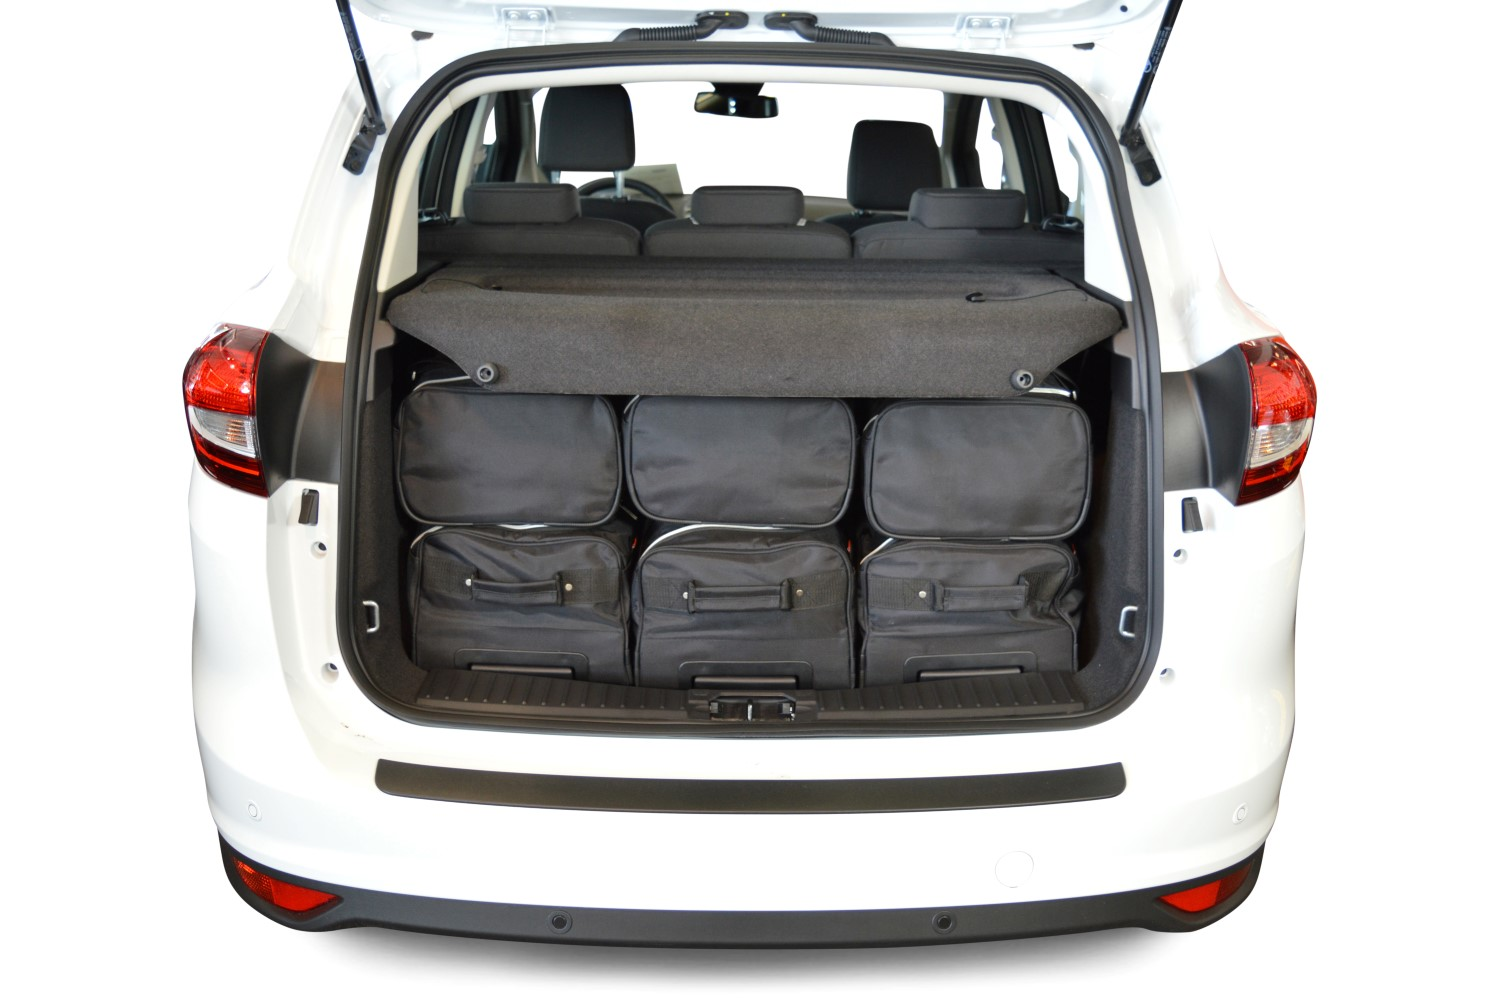 c max ford c max 2010 present car bags travel bags. Black Bedroom Furniture Sets. Home Design Ideas